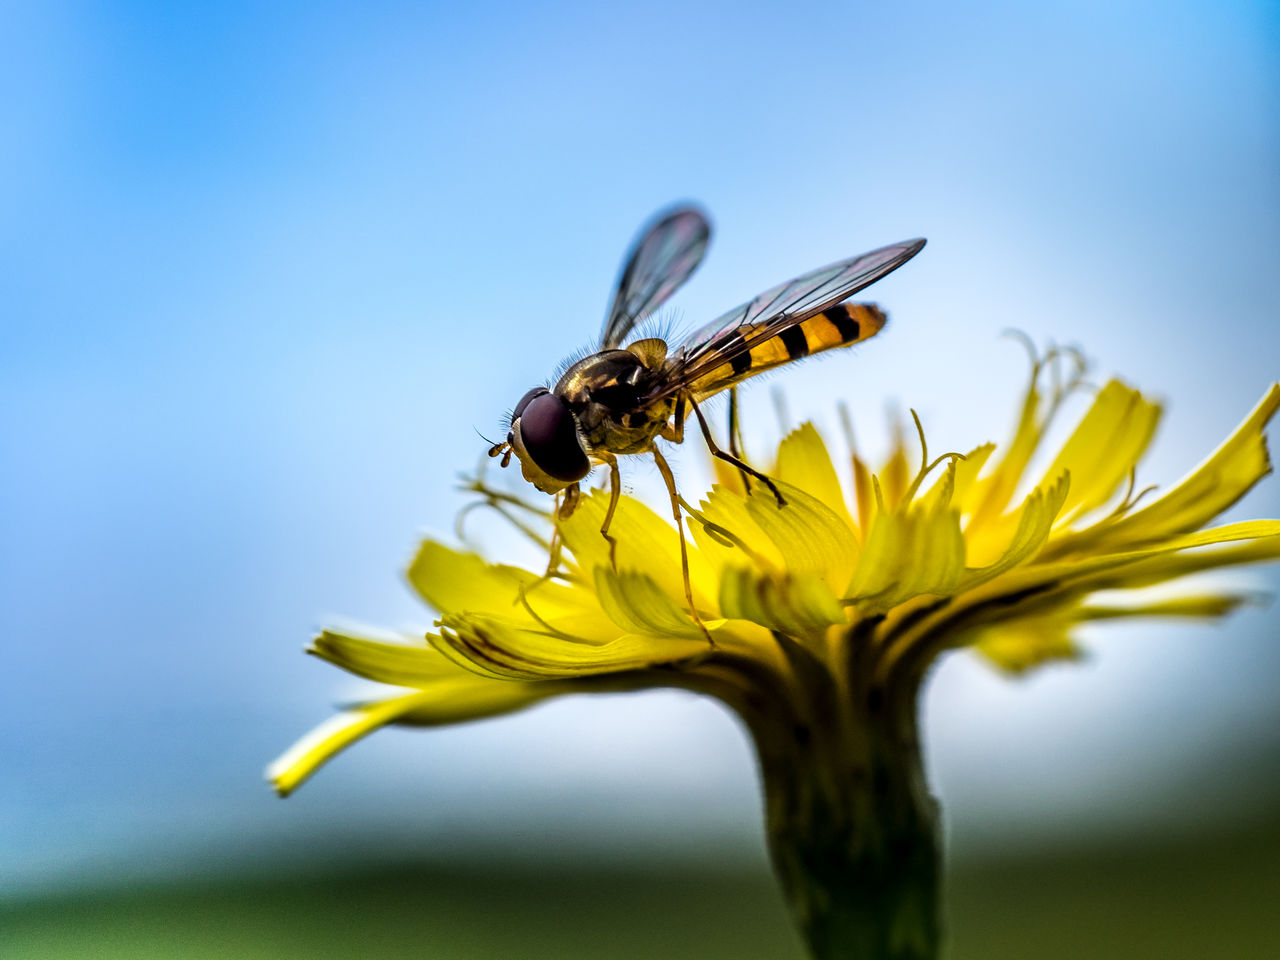 Close-Up Of Hoverfly On Yellow Flower Against Sky